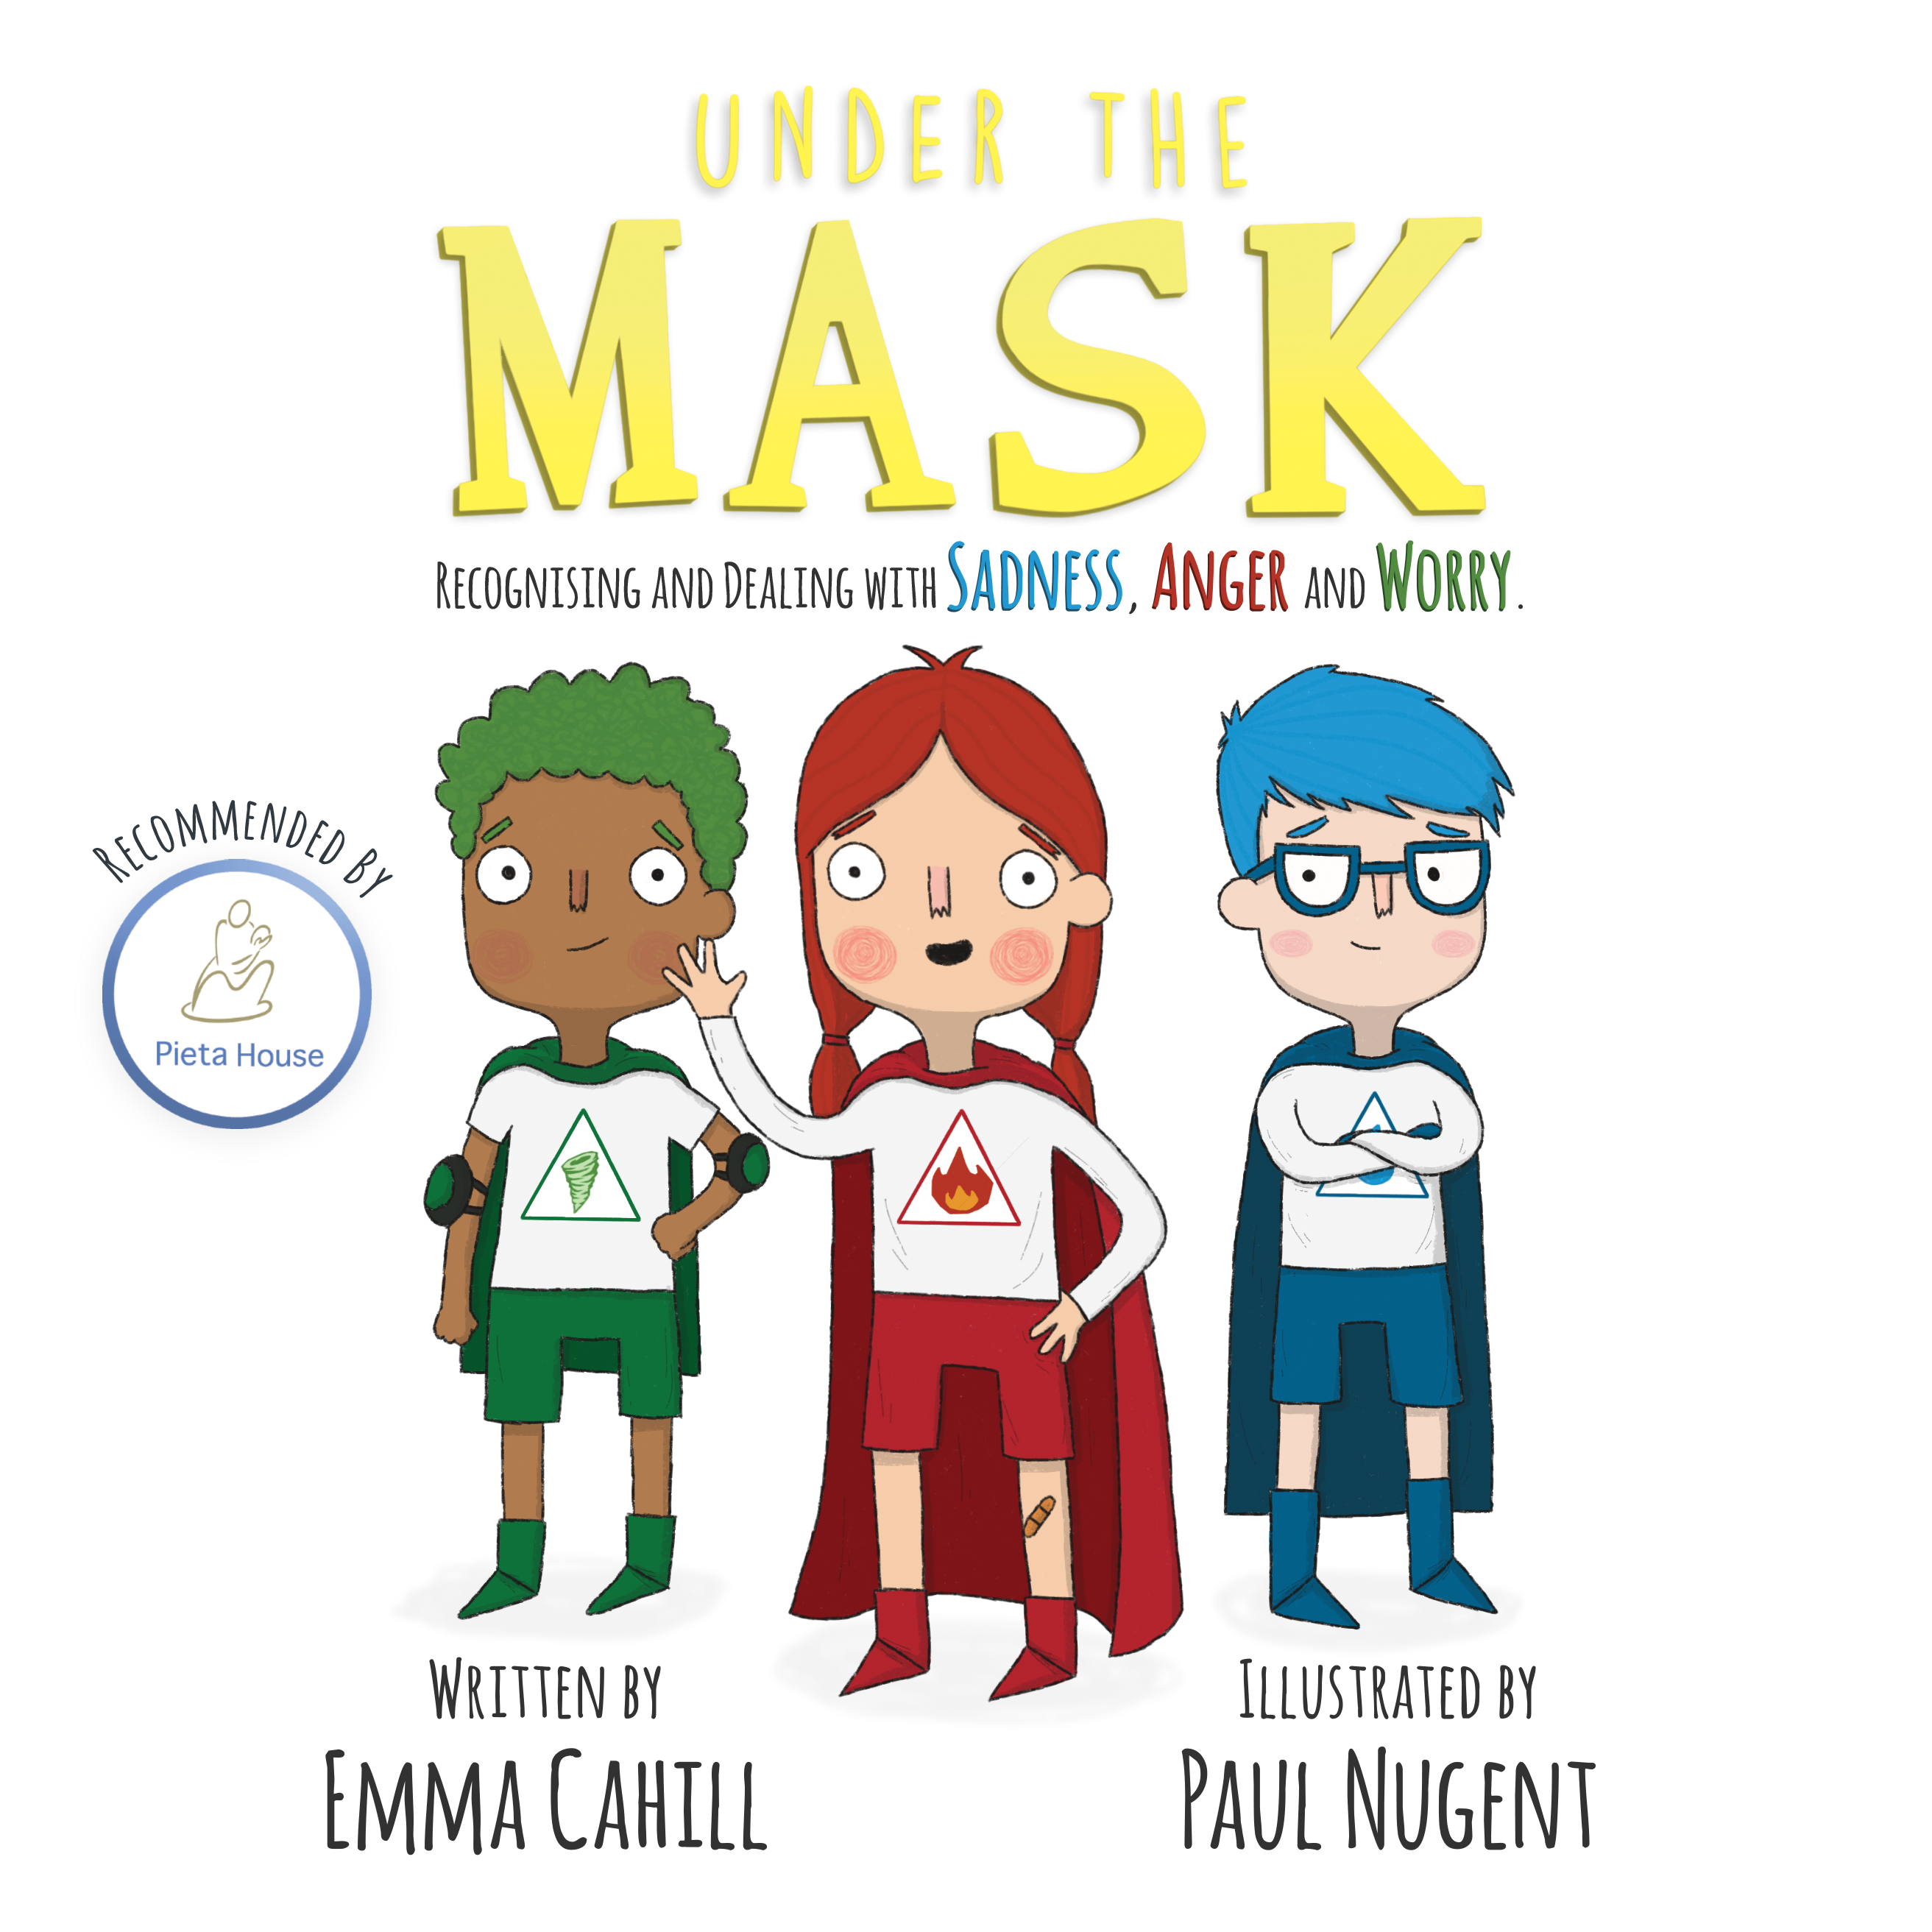 Under The Mask book cover